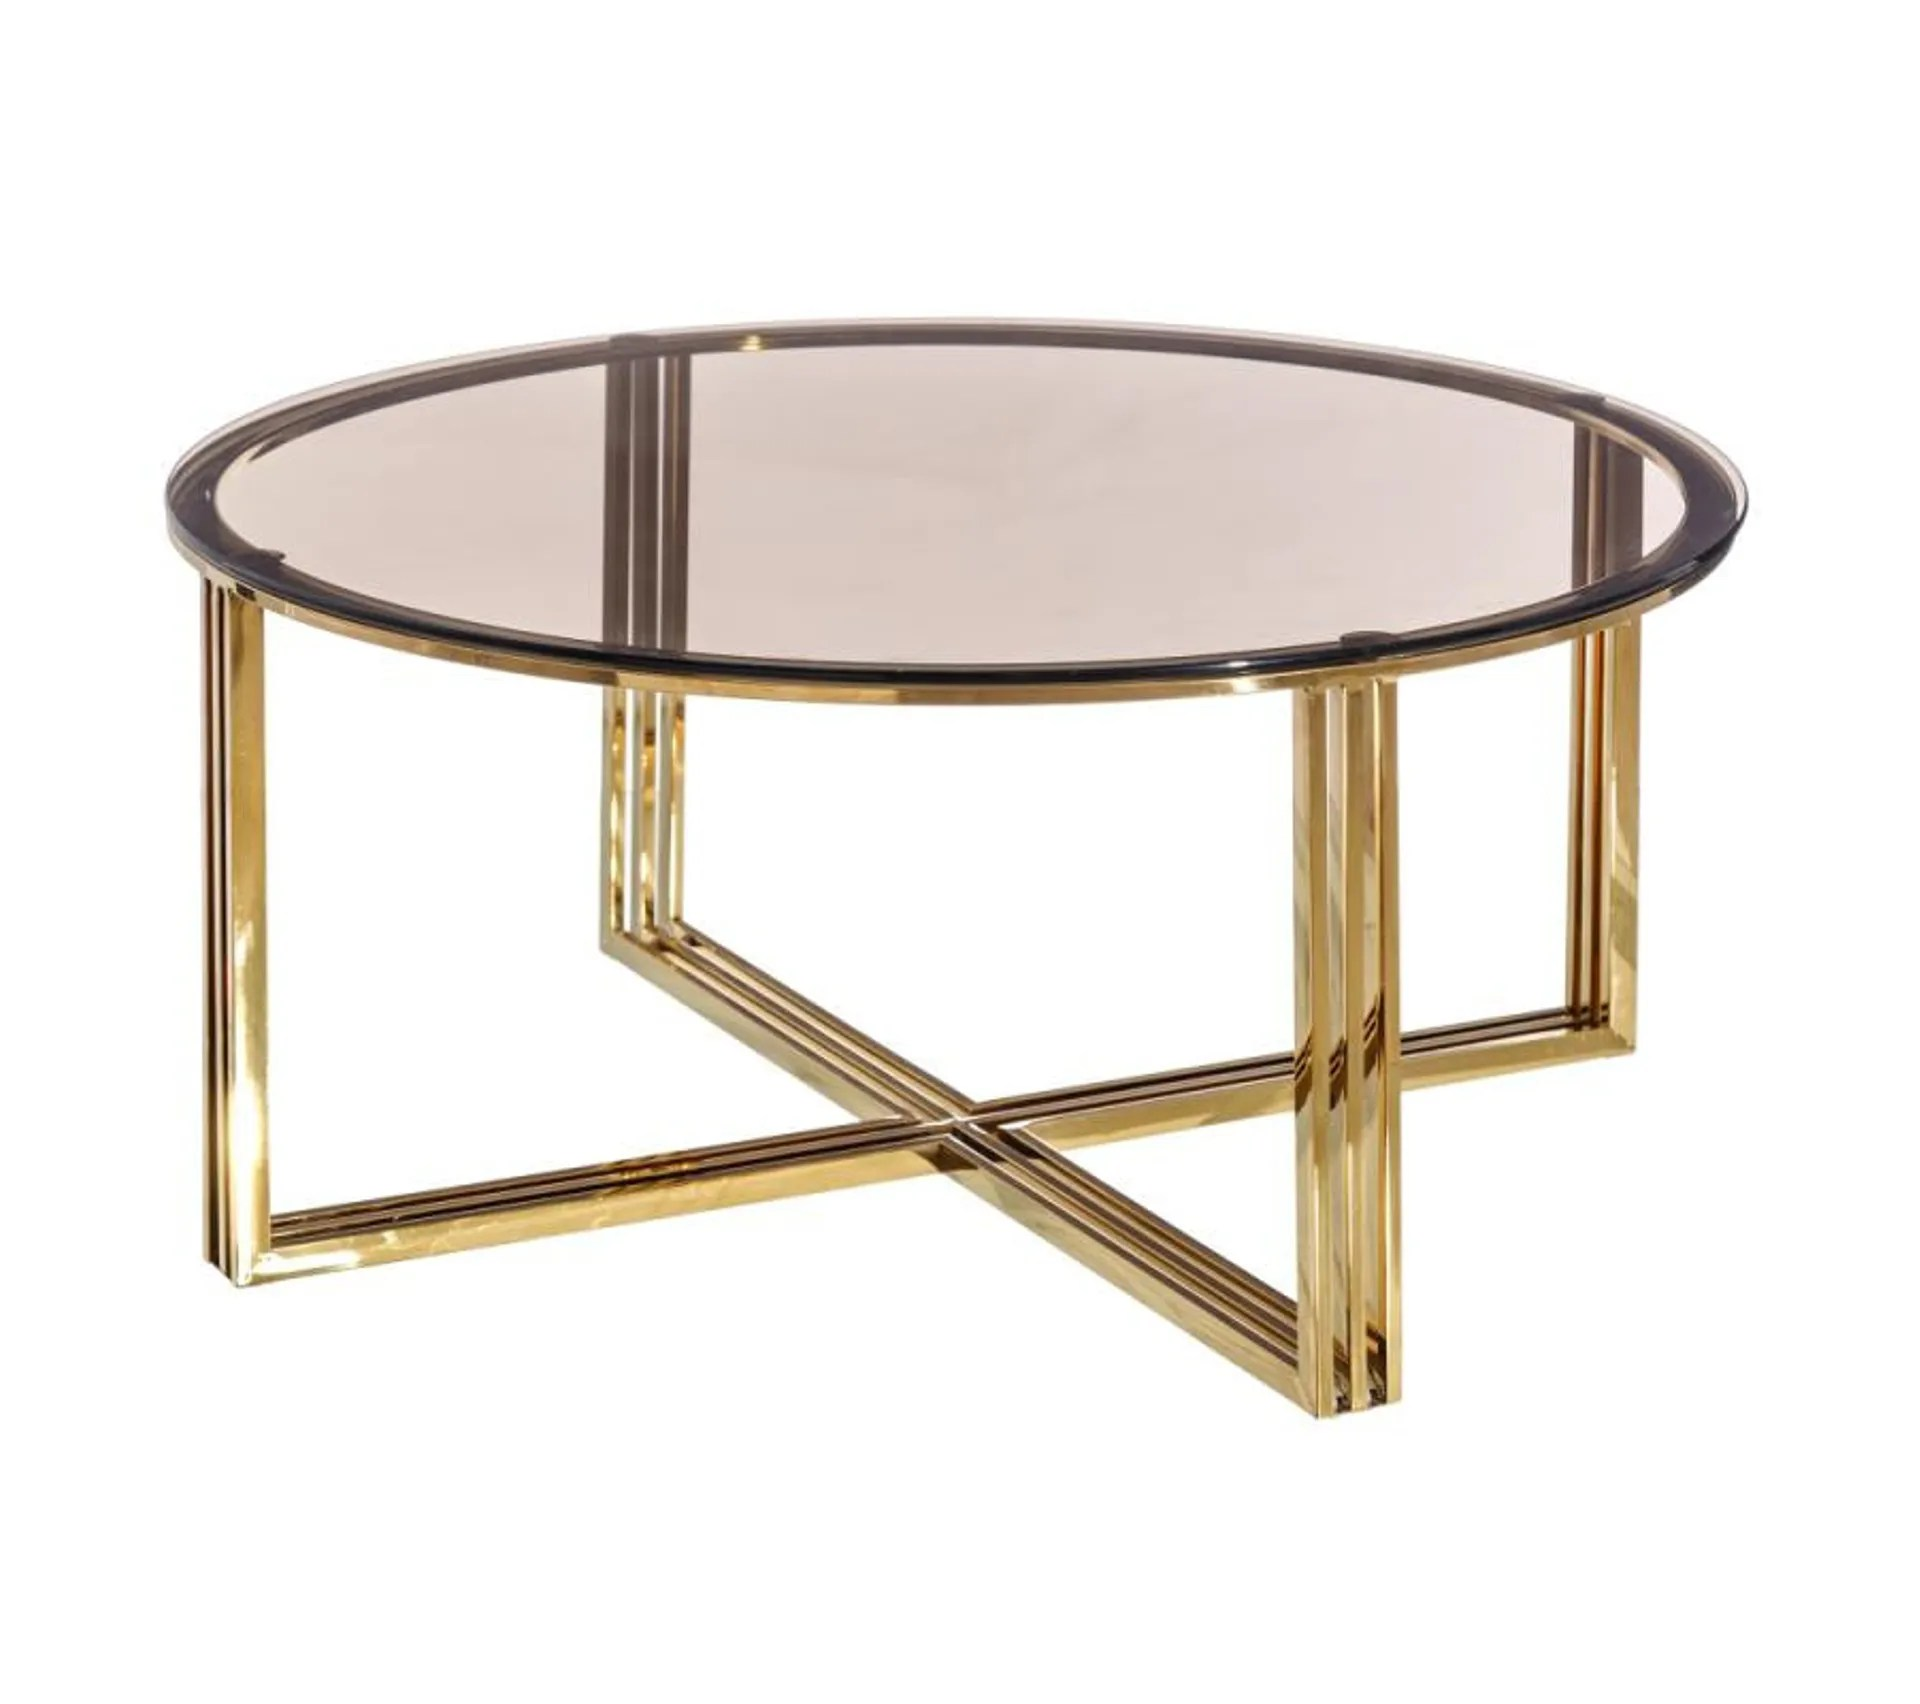 Table Basse Ronde Verre Metal Tebulo Table Basse But